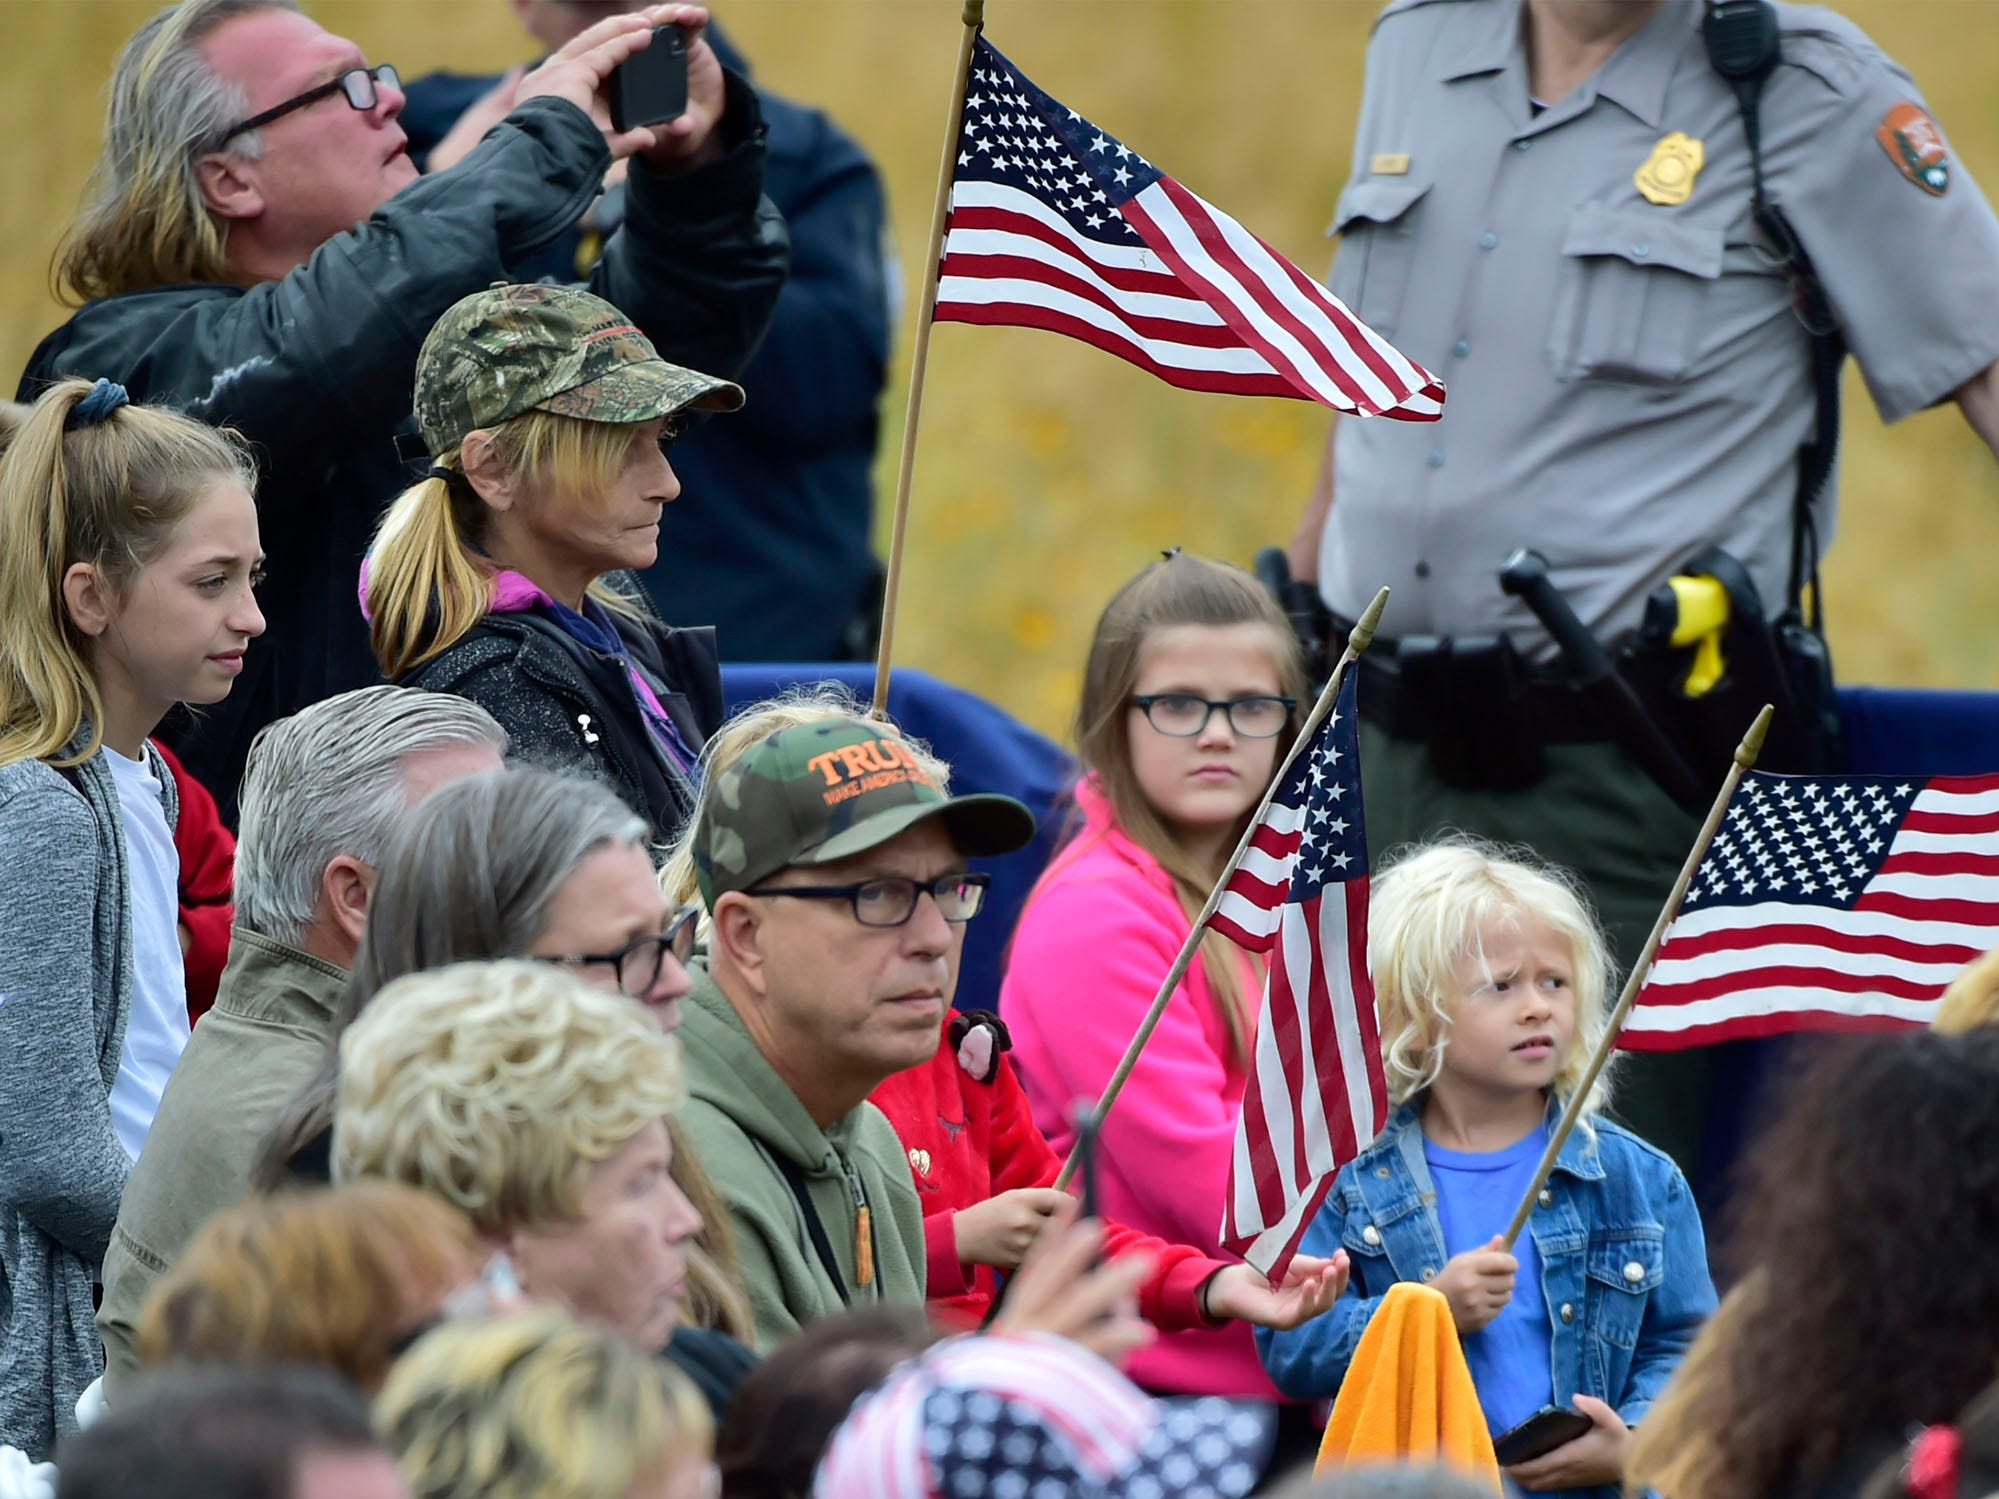 Supporters cheer for President Trump. The Flight 93 National Memorial's 17th Annual September 11 ceremony is being held at the Memorial Plaza in Shanksville, Pa.